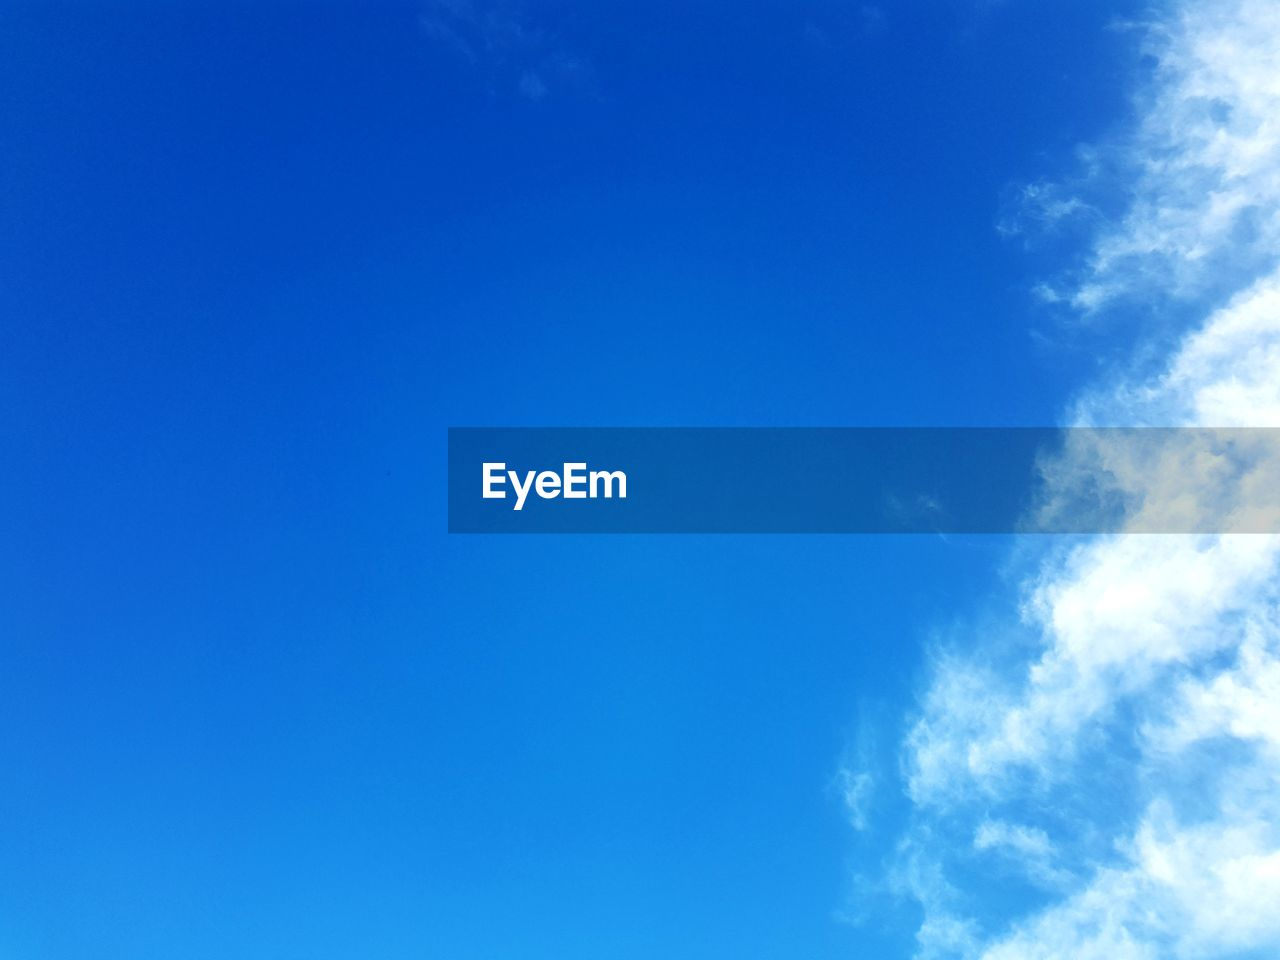 blue, low angle view, beauty in nature, nature, sky, day, no people, sky only, outdoors, backgrounds, tranquility, tranquil scene, scenics, cloud - sky